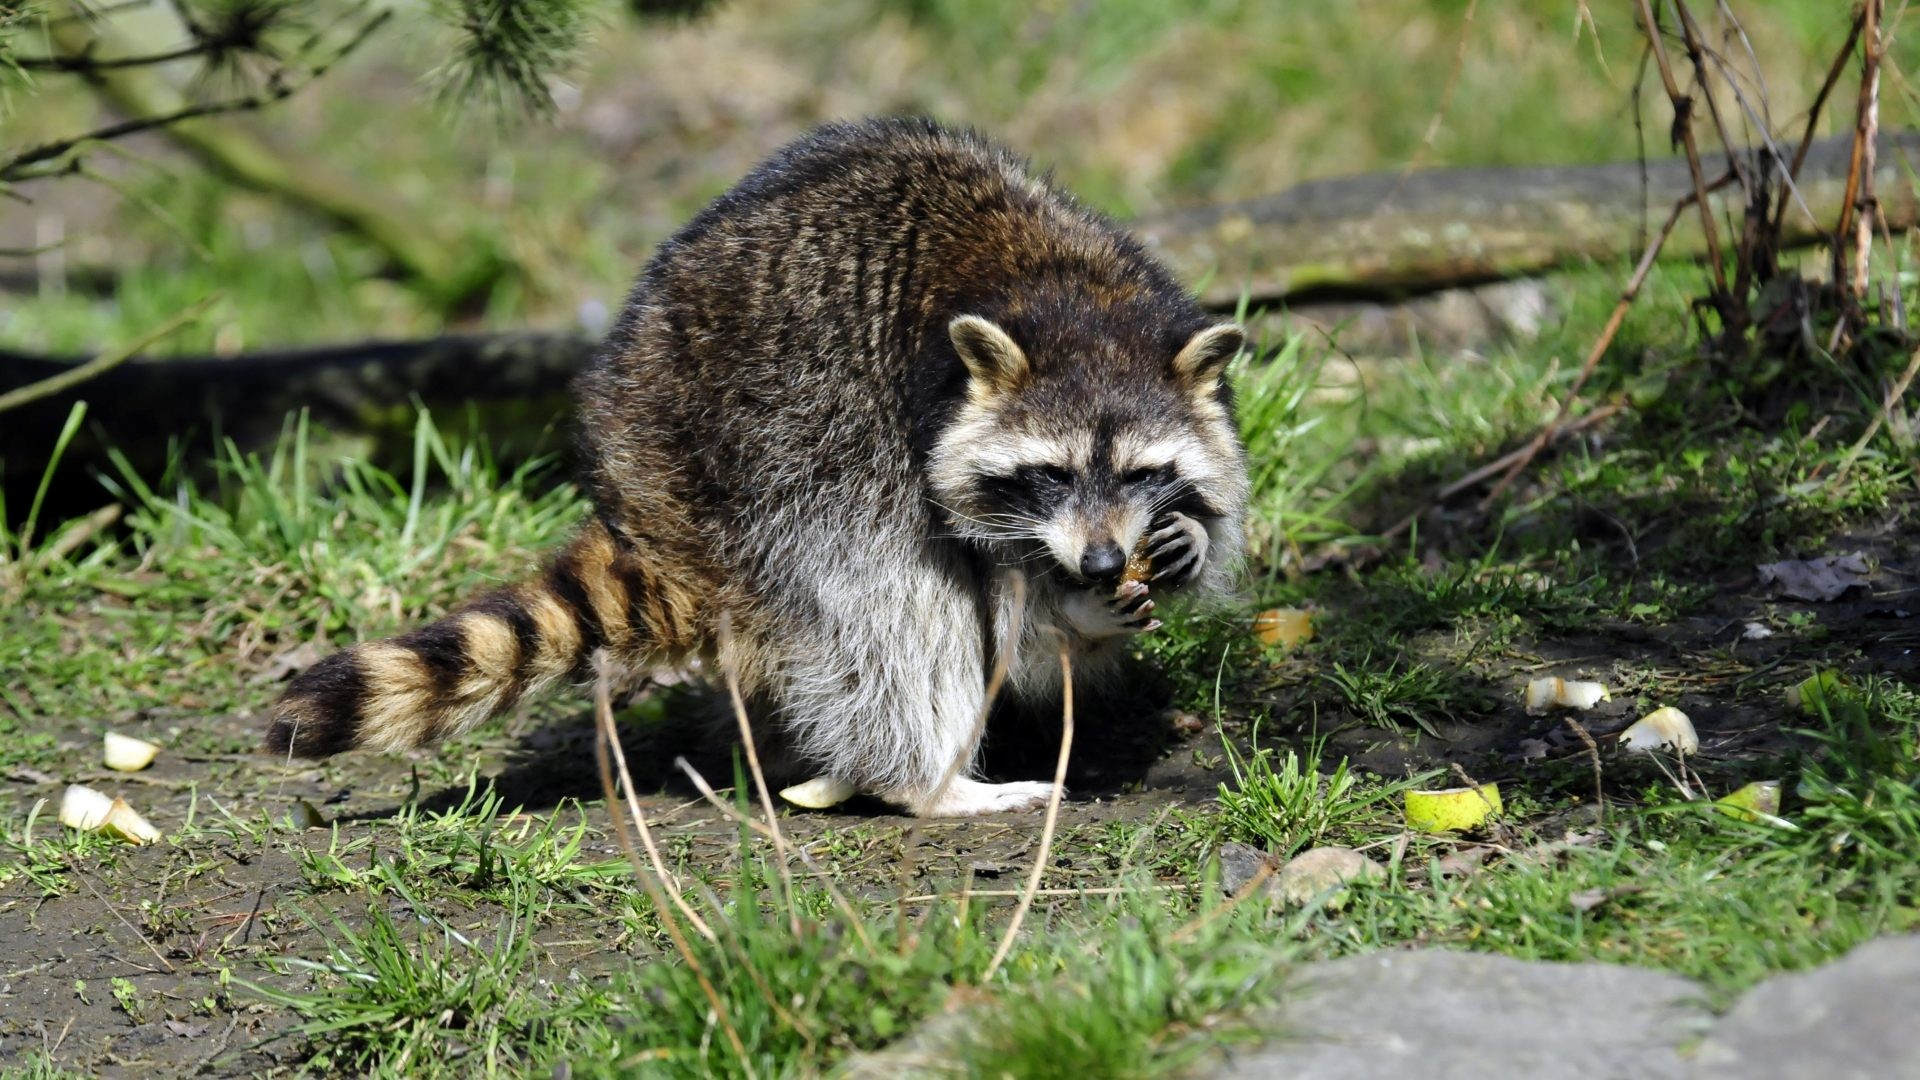 1920x1080 Raccoon Tag - Animals Grass Raccoon Free Download Desktop Animated for HD  16:9 High